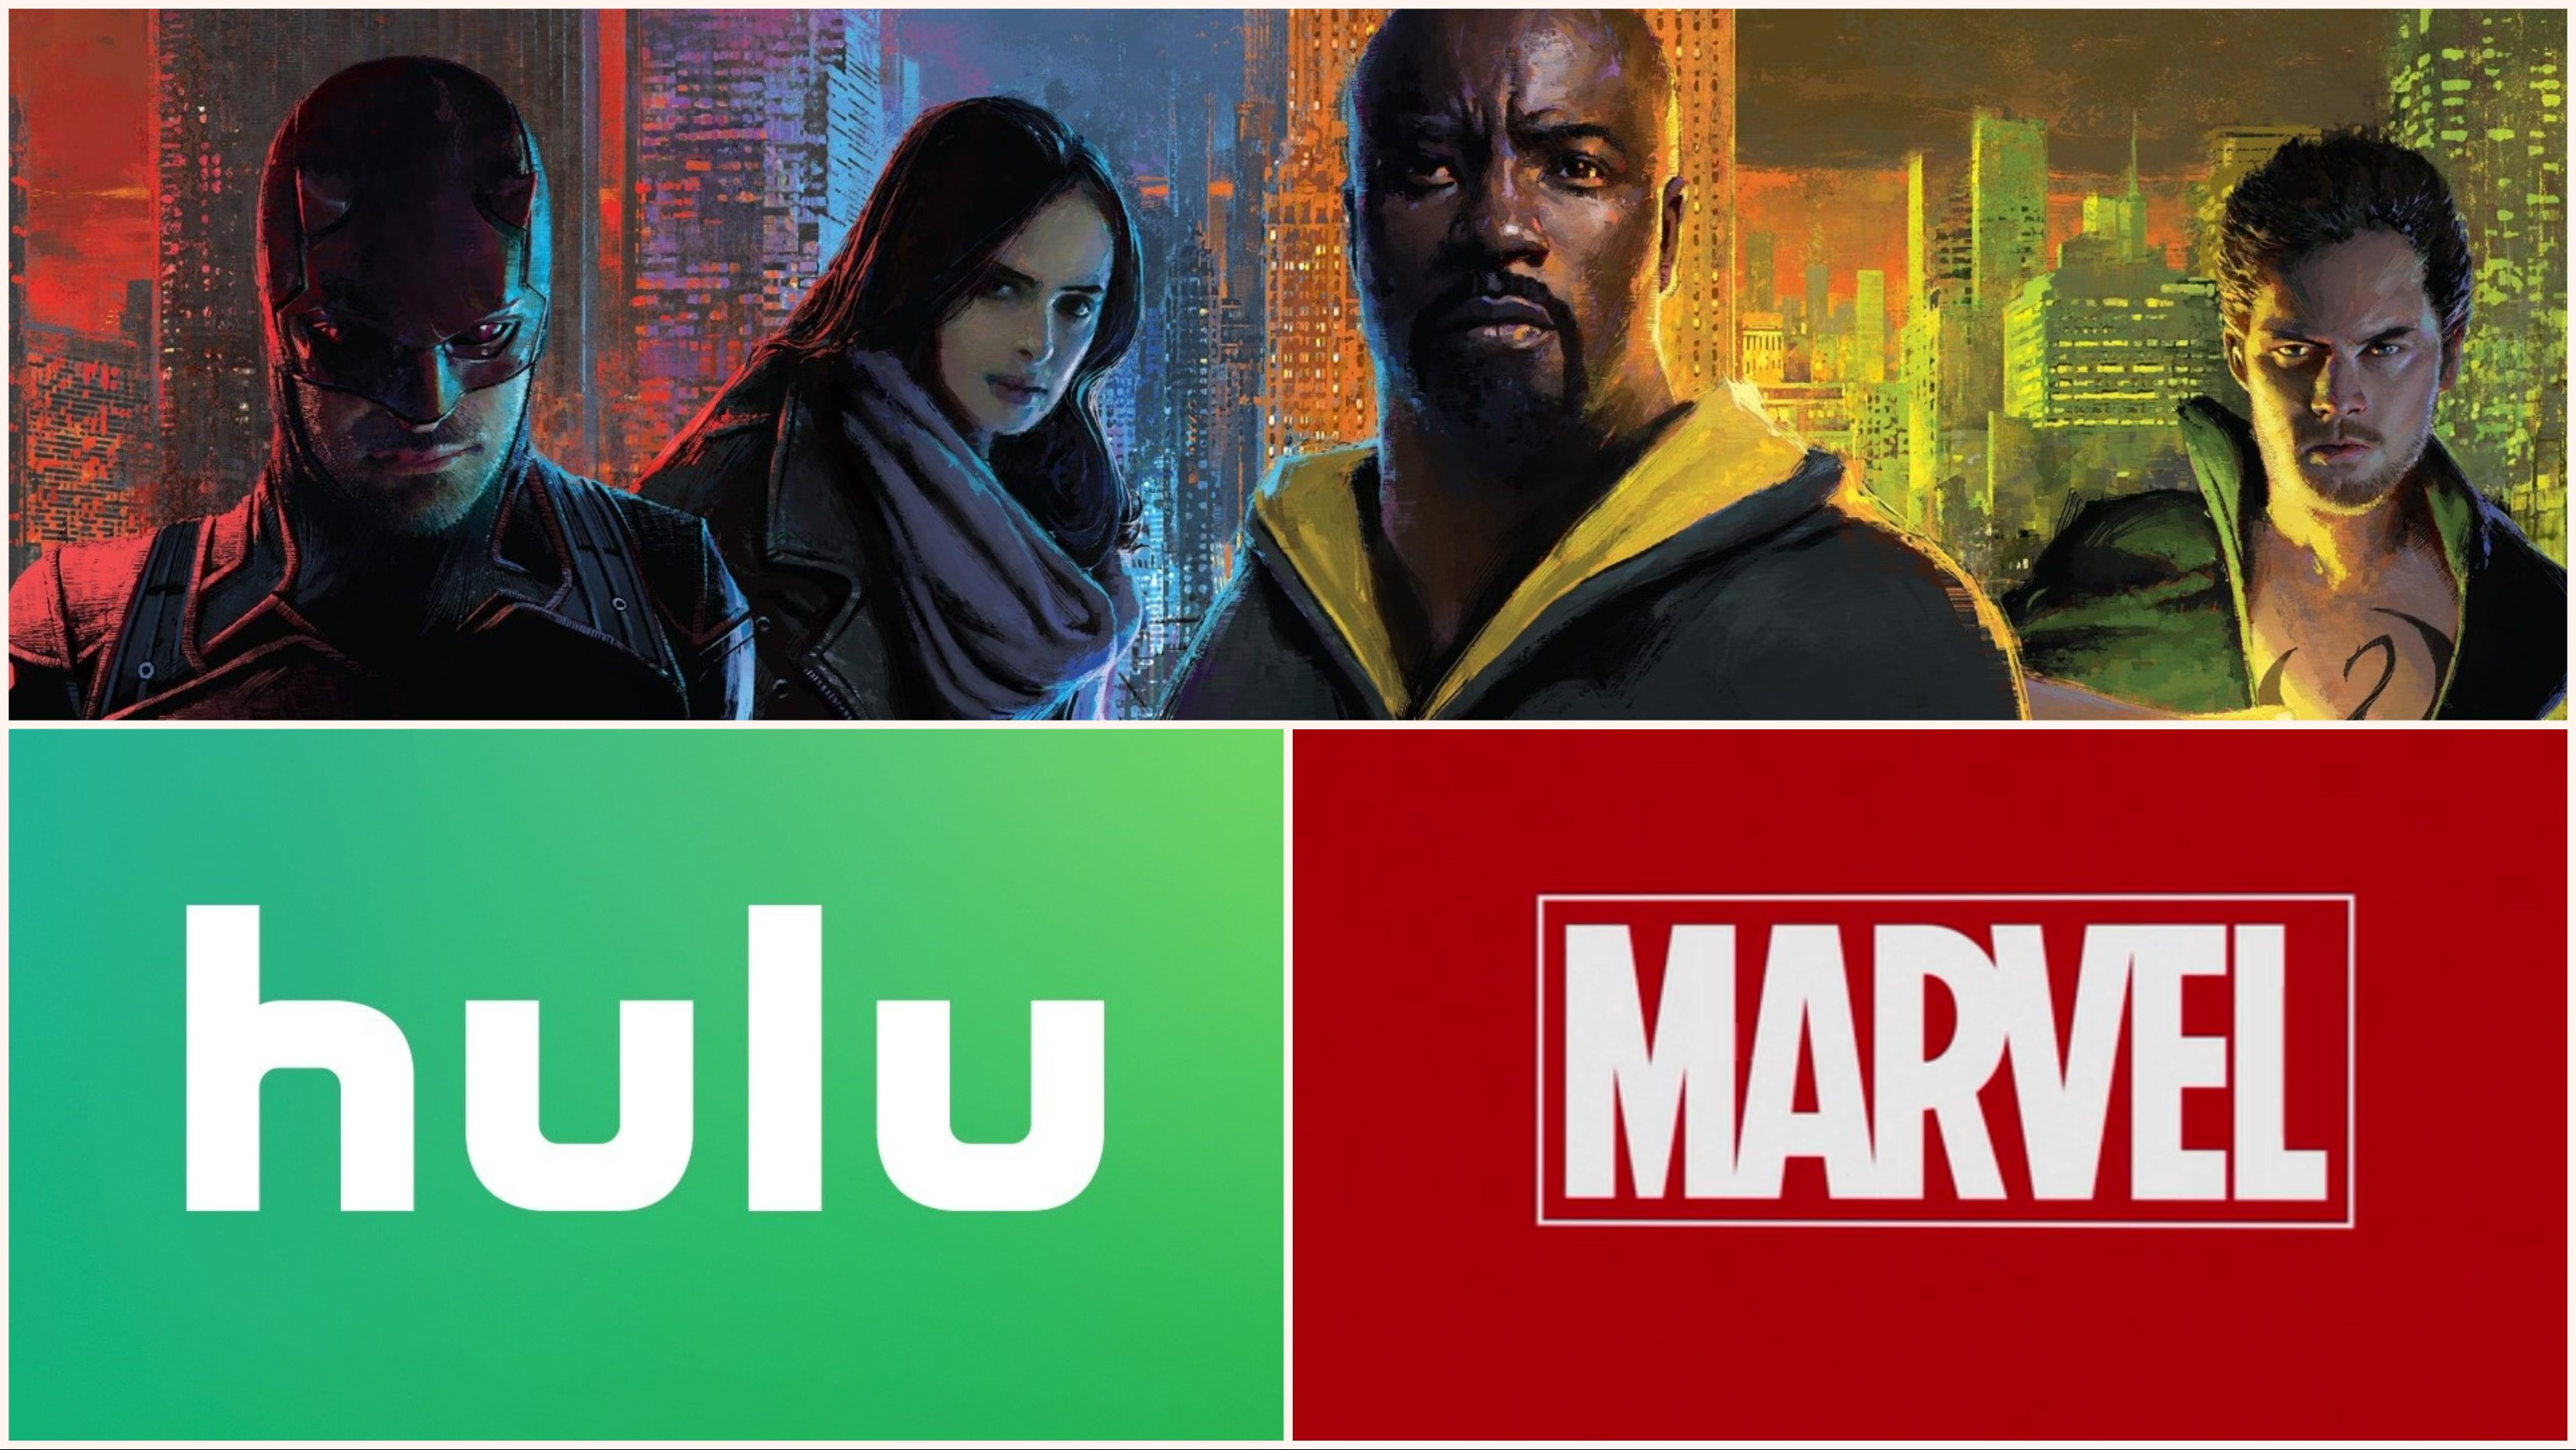 Hulu Shows Hulu Interested In Reviving Marvel S Netflix Shows Fandomwire